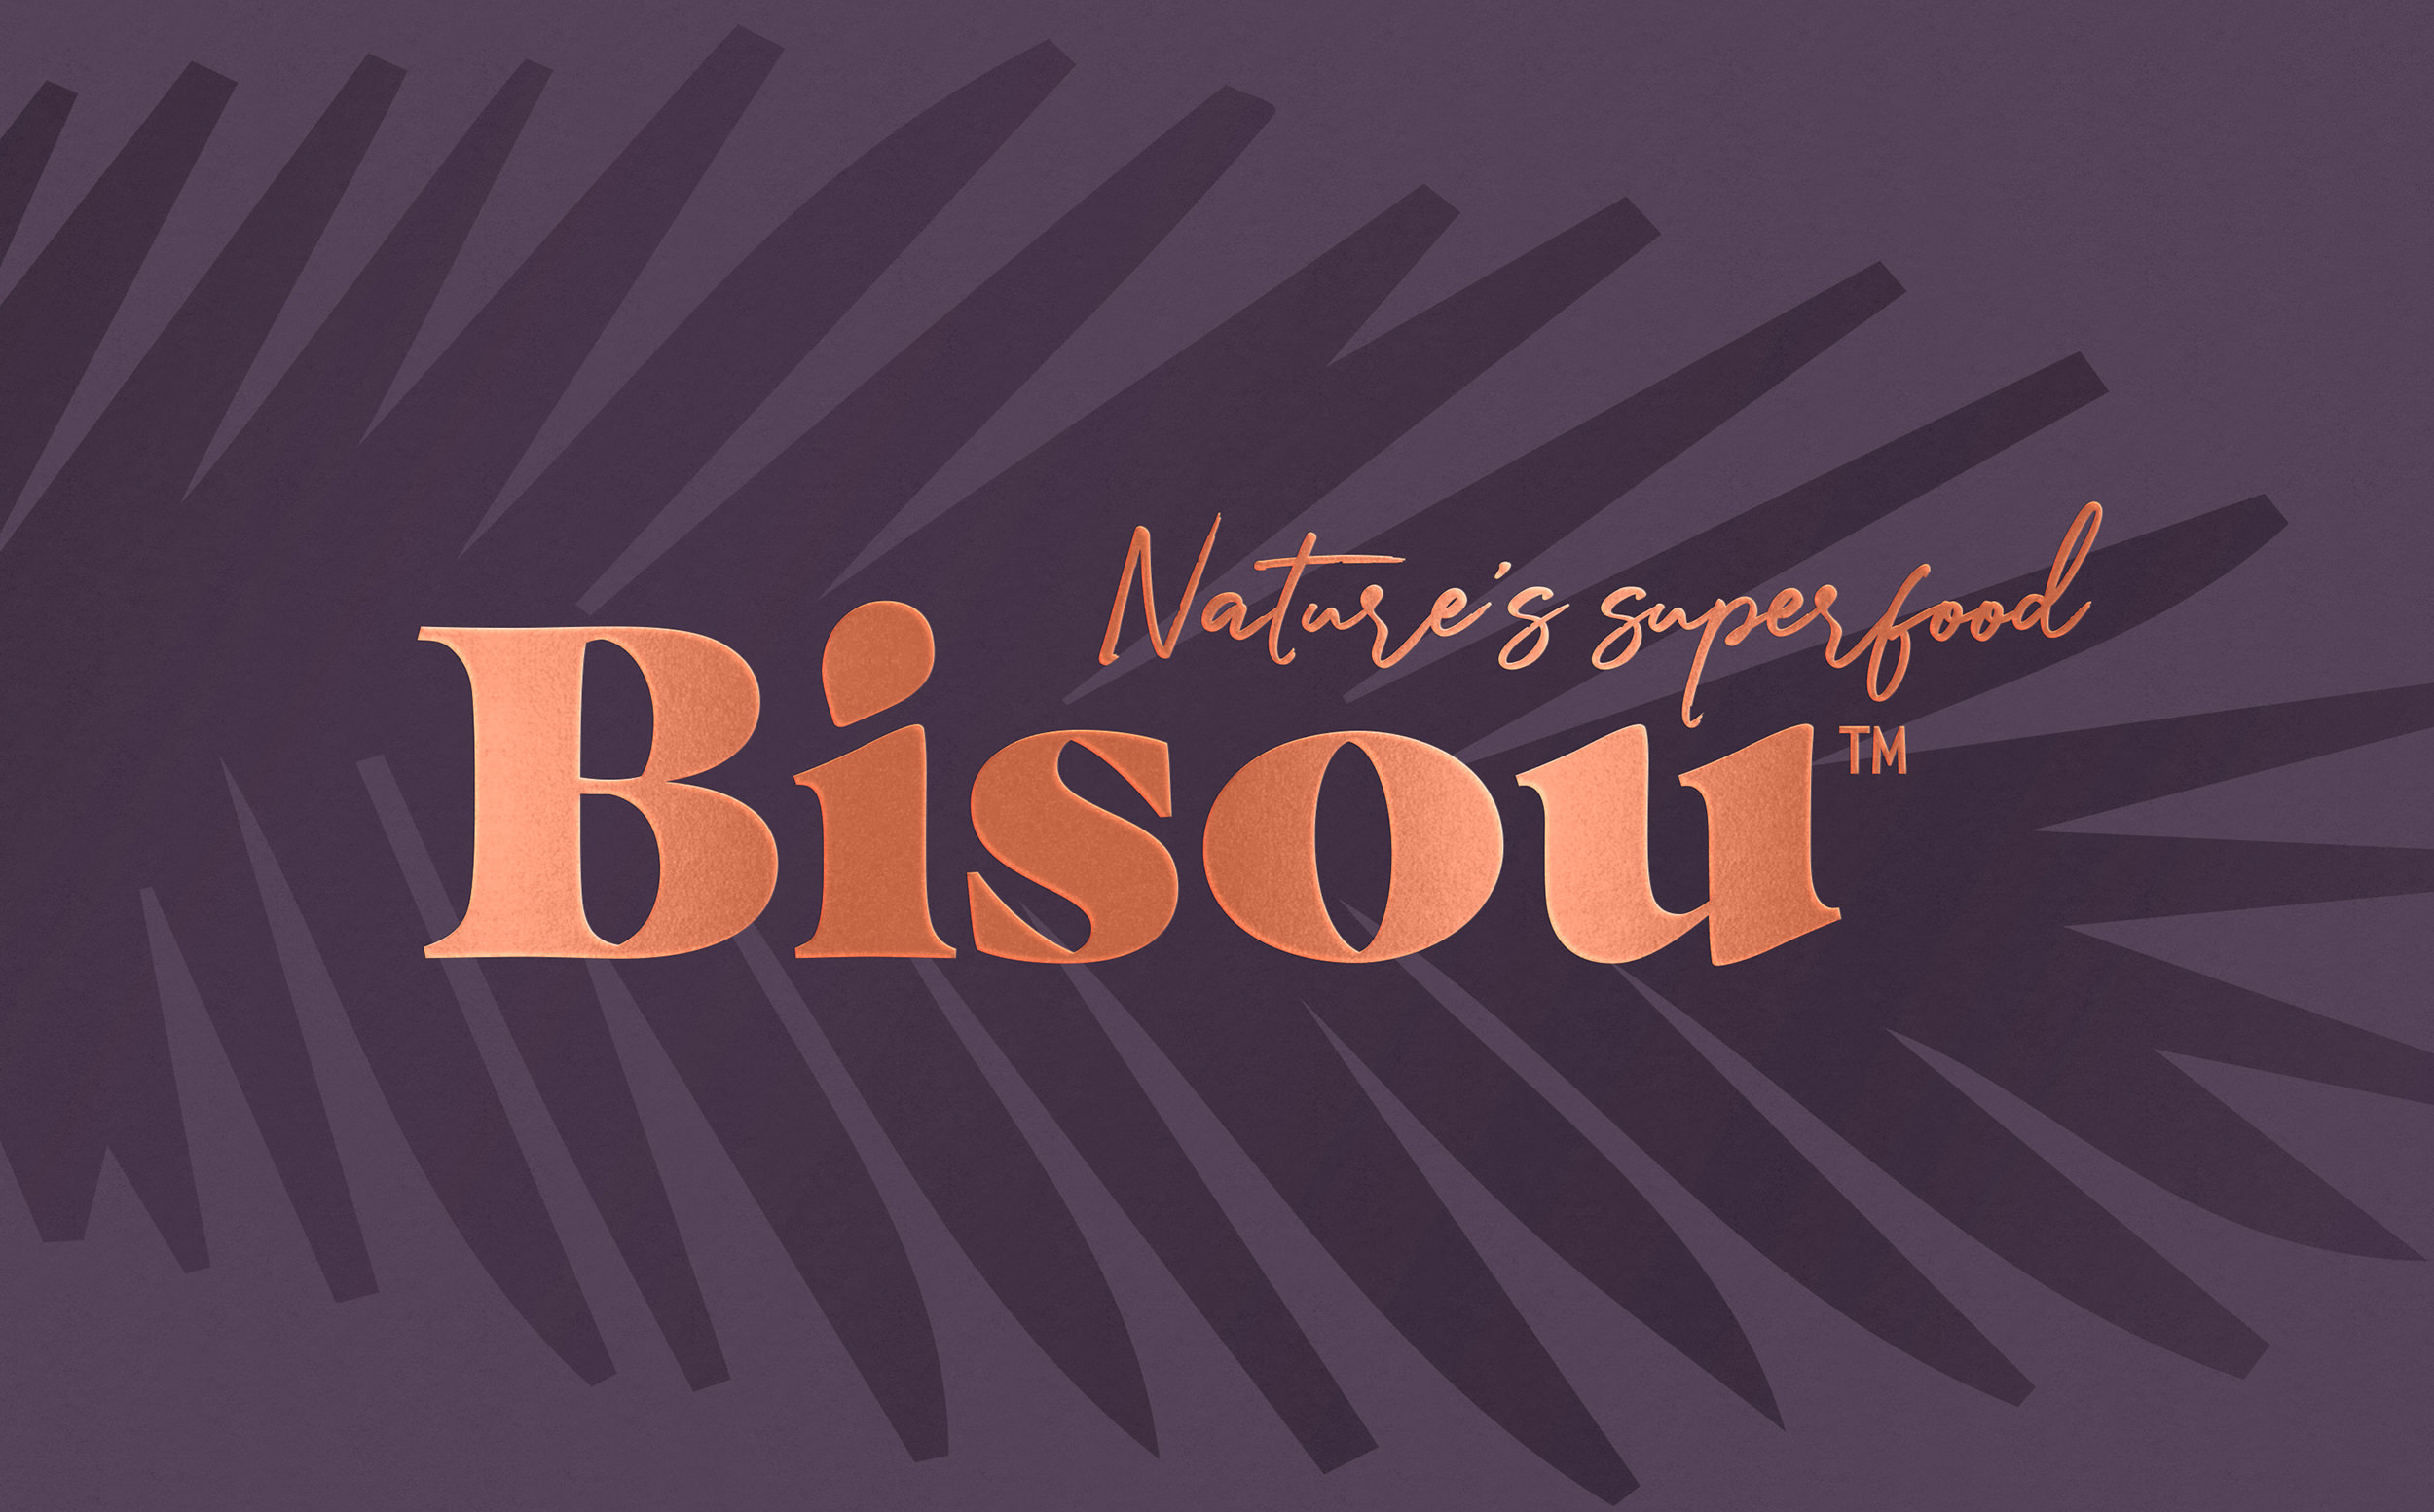 Chad Roberts Design Ltd. Bisou Brand Identity Design